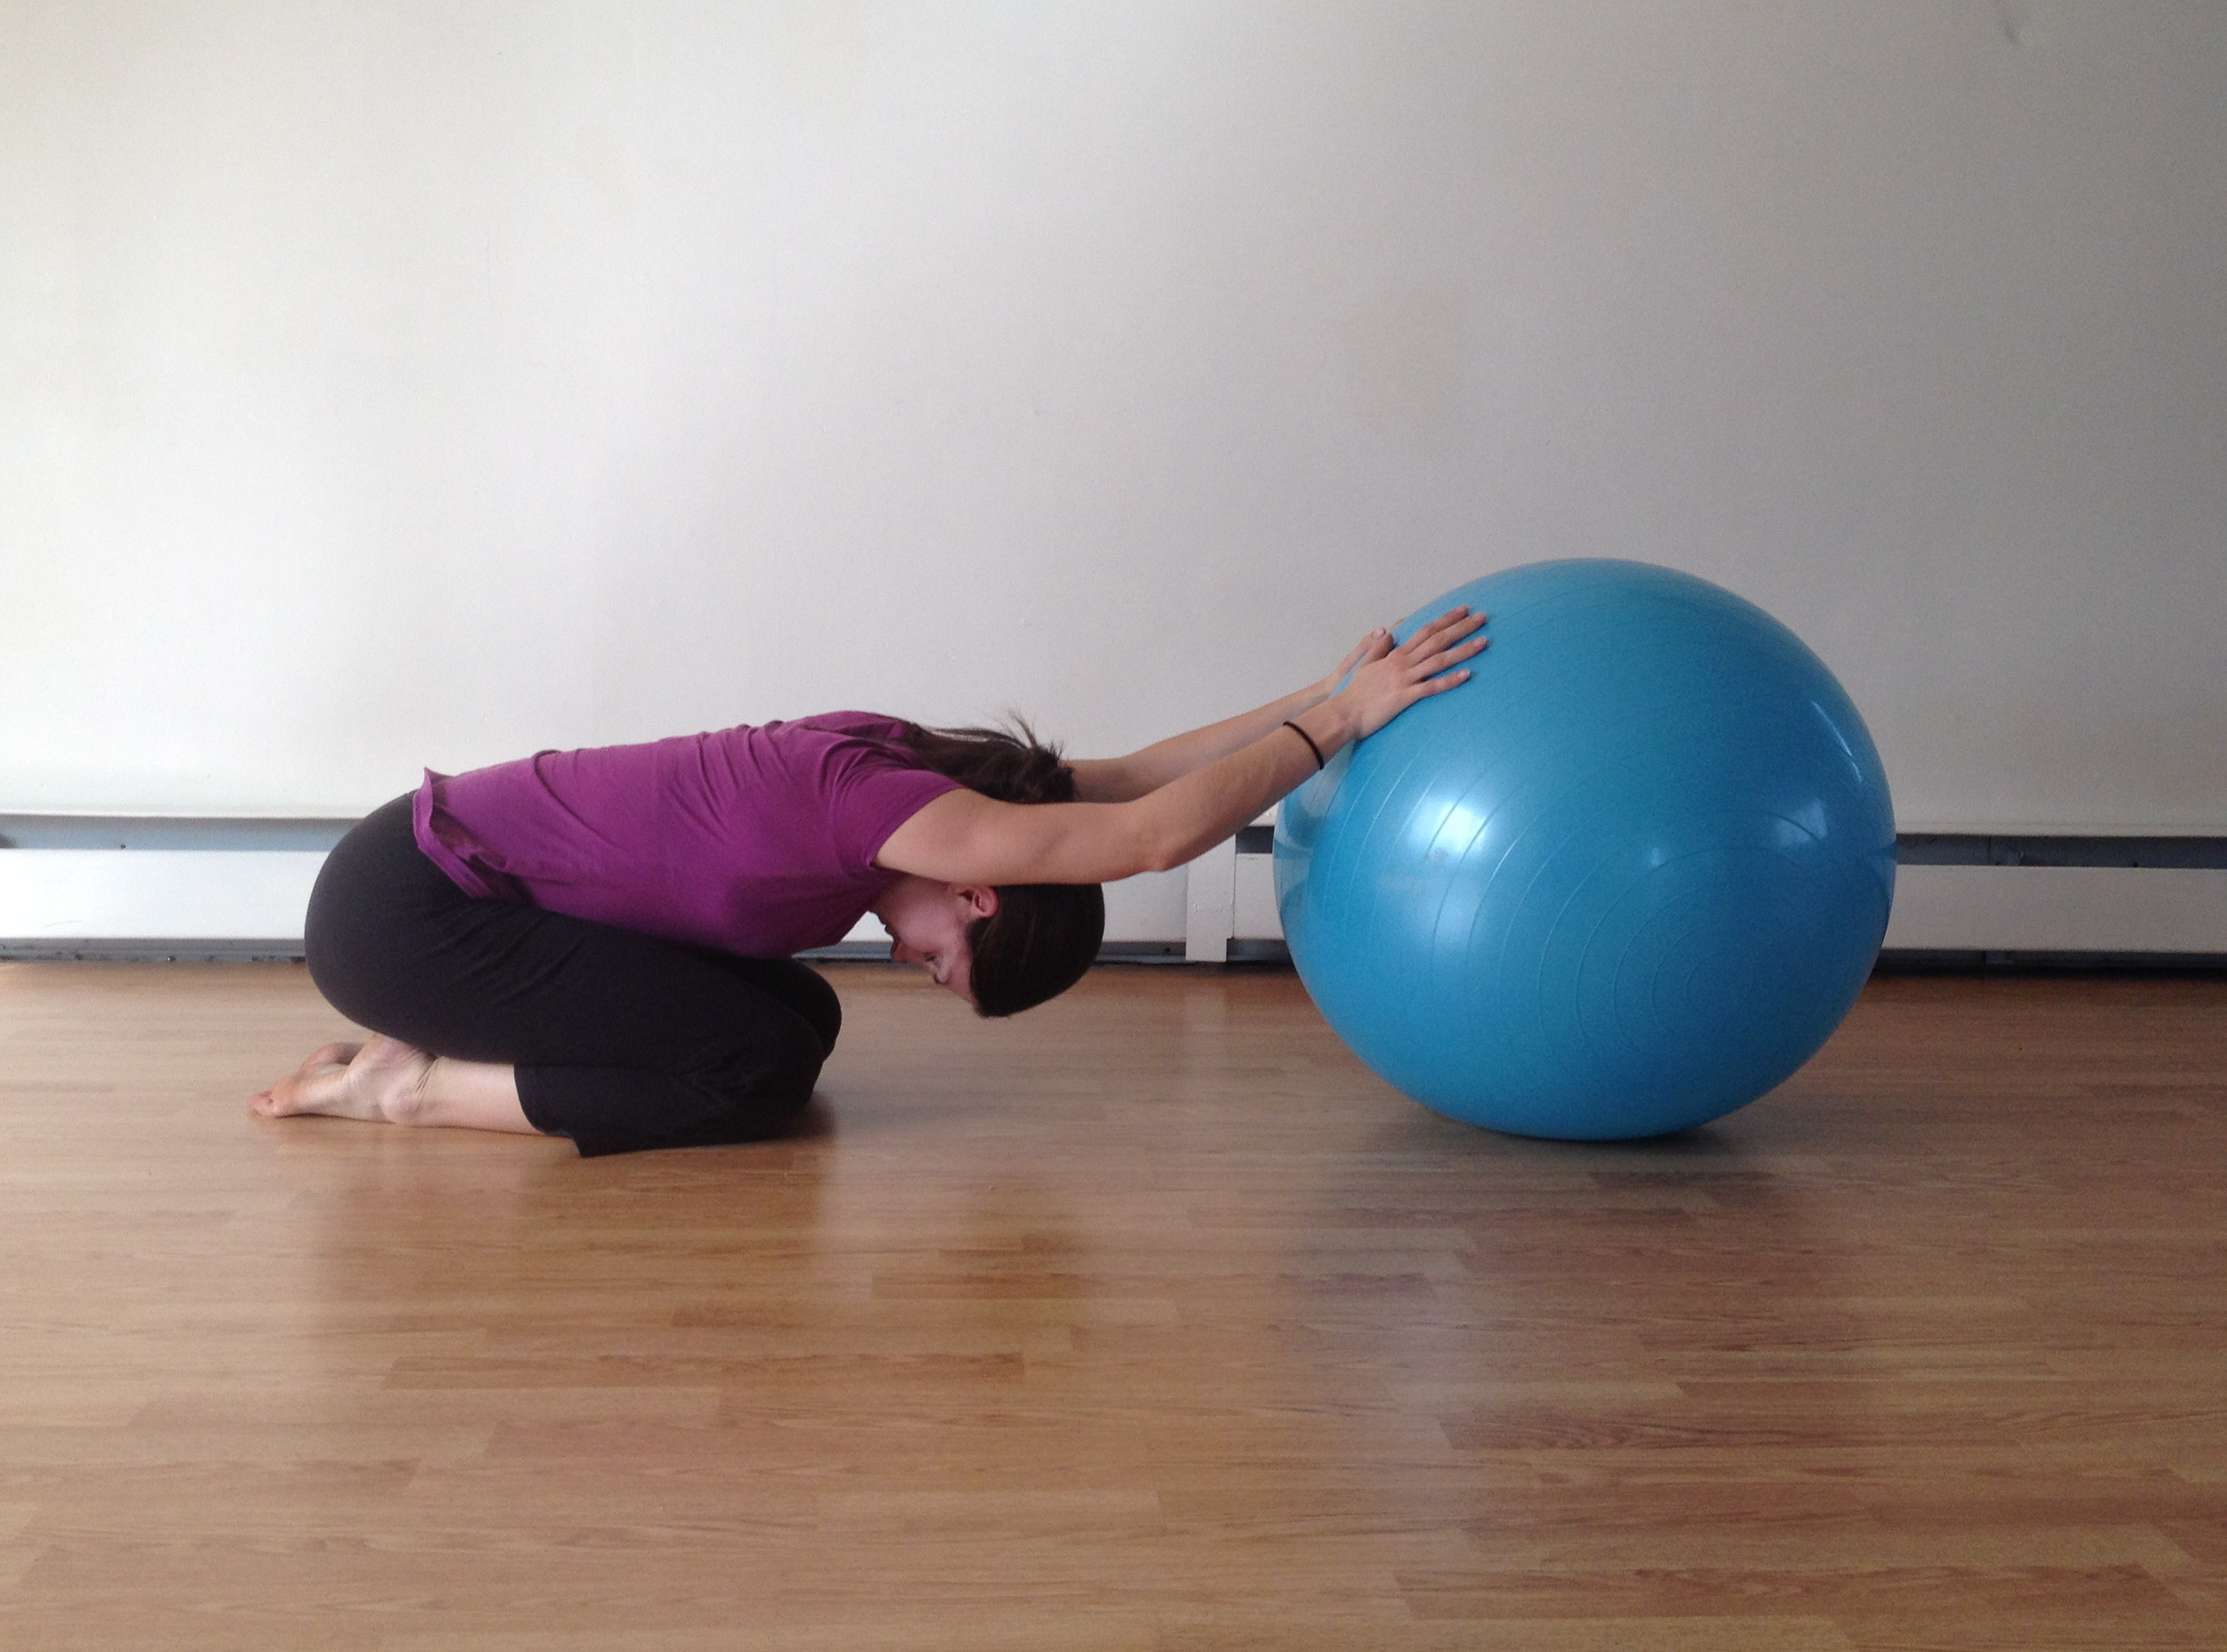 The ball offers a great stretch support